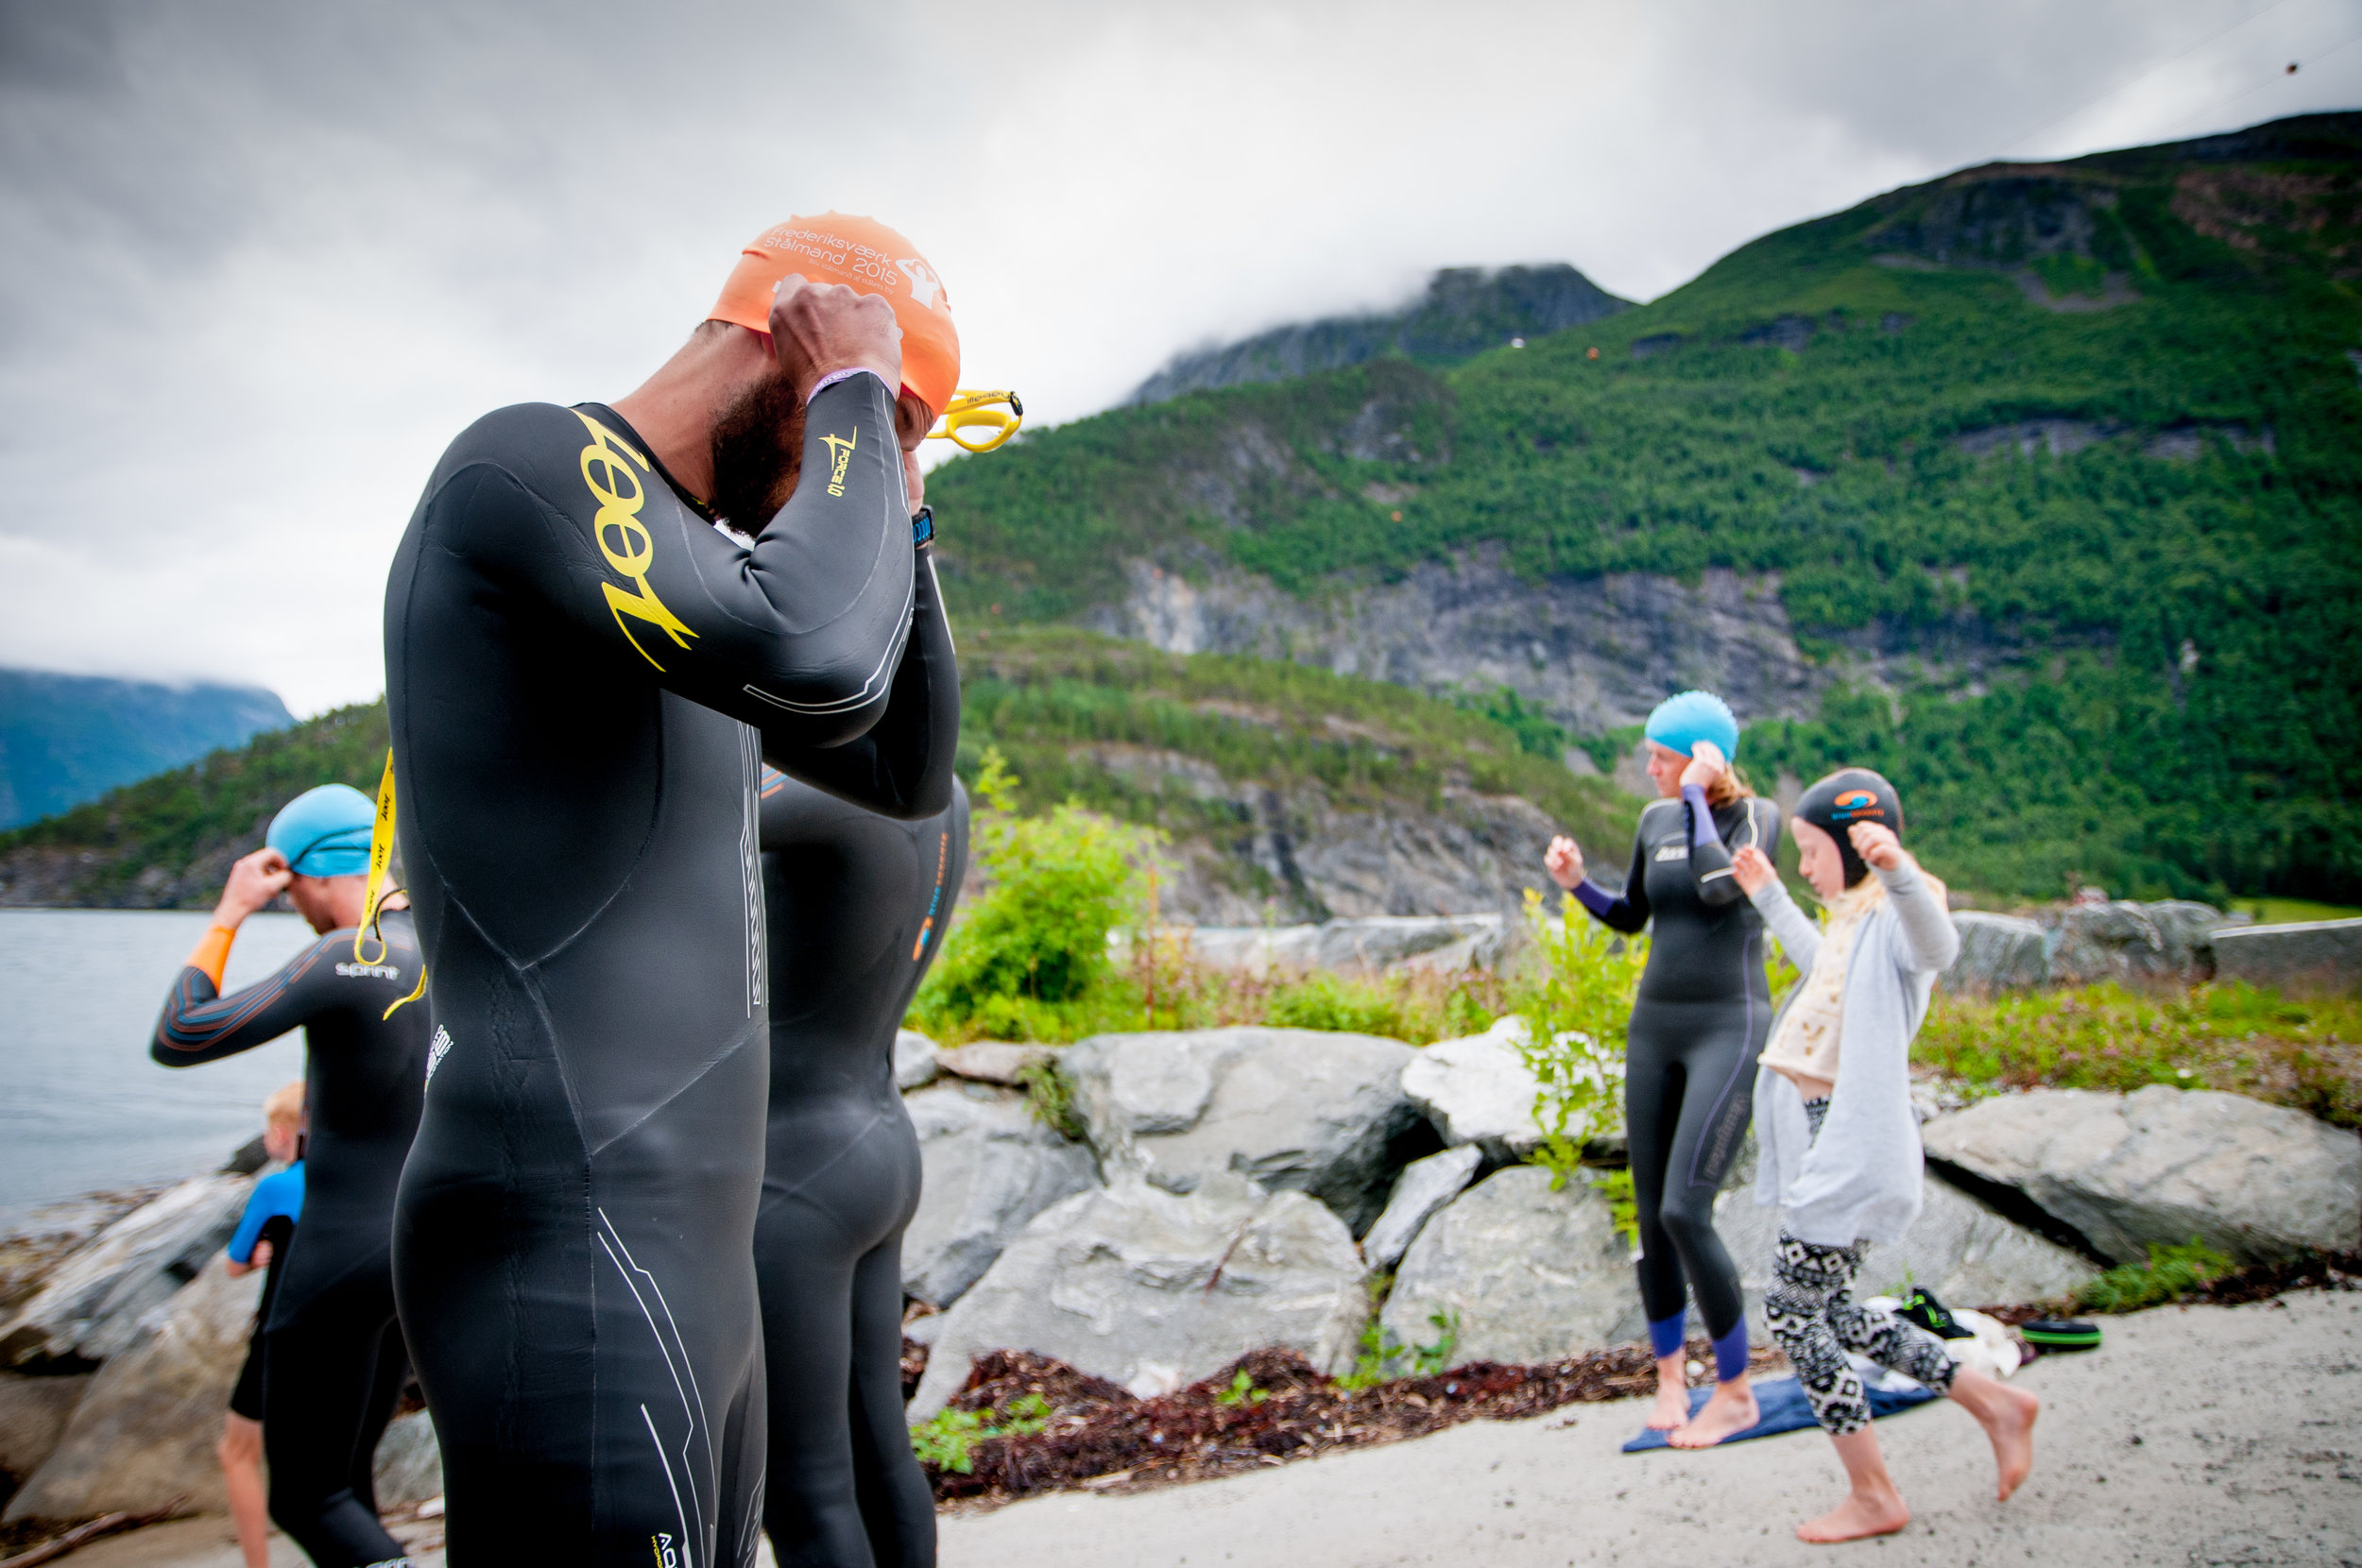 A picture of me getting ready to swim last year in the cold fjords of Norway. Nikon D200.